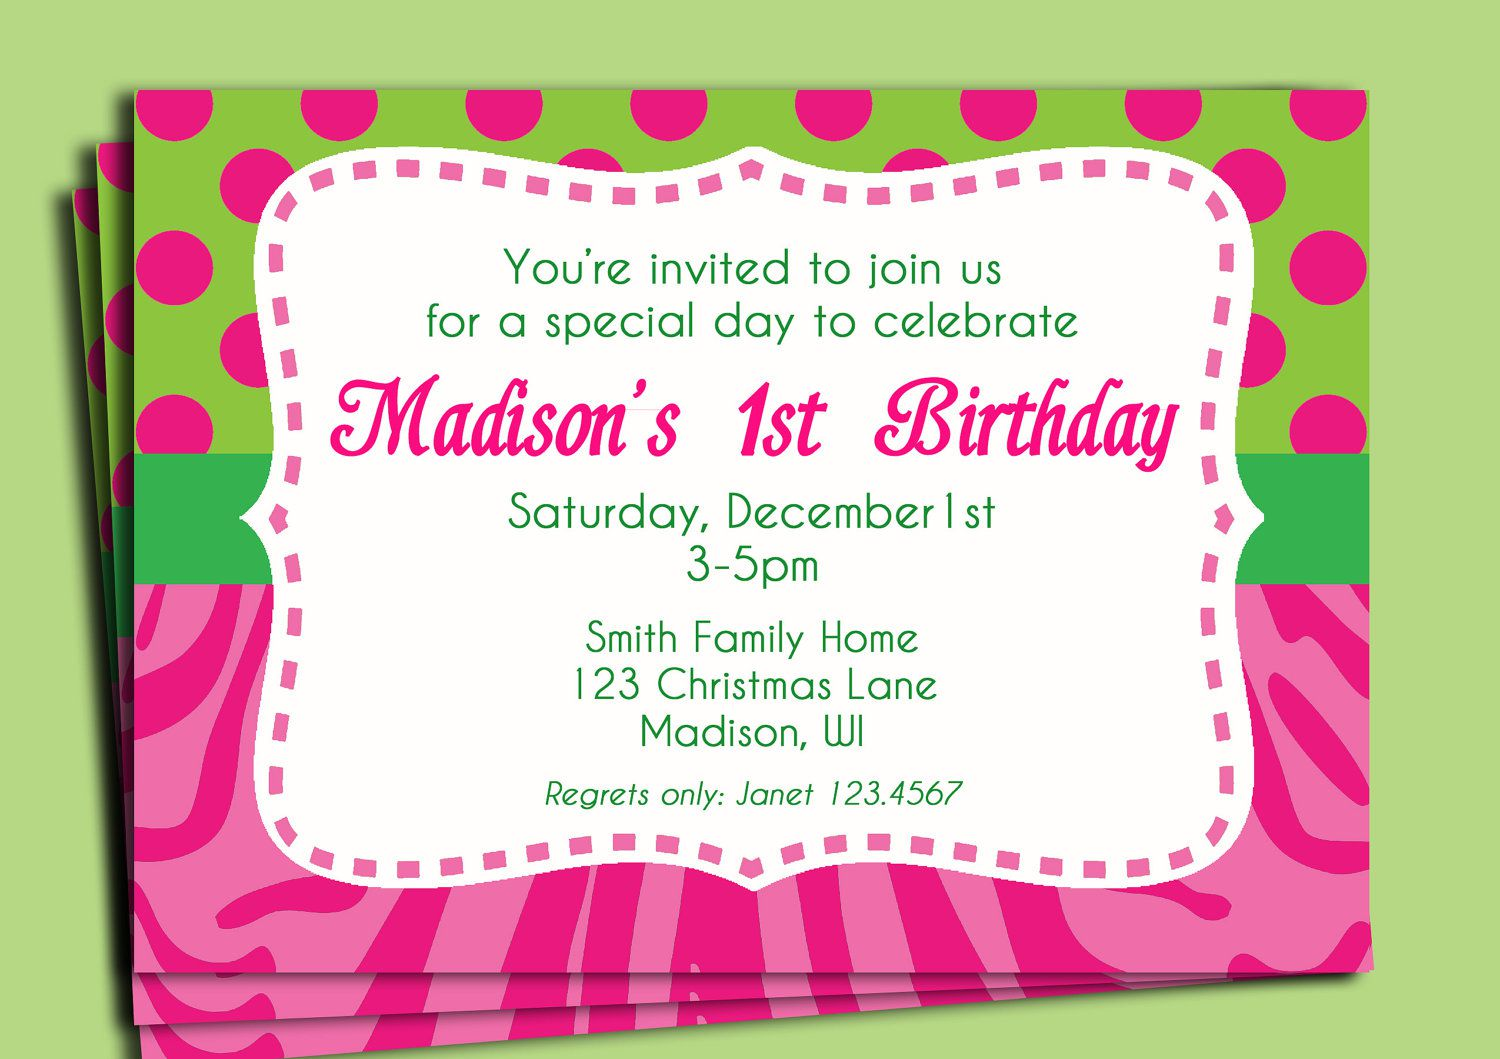 4 year old birthday invitation sayings ; birthday-invitation-wording-for-11-year-old